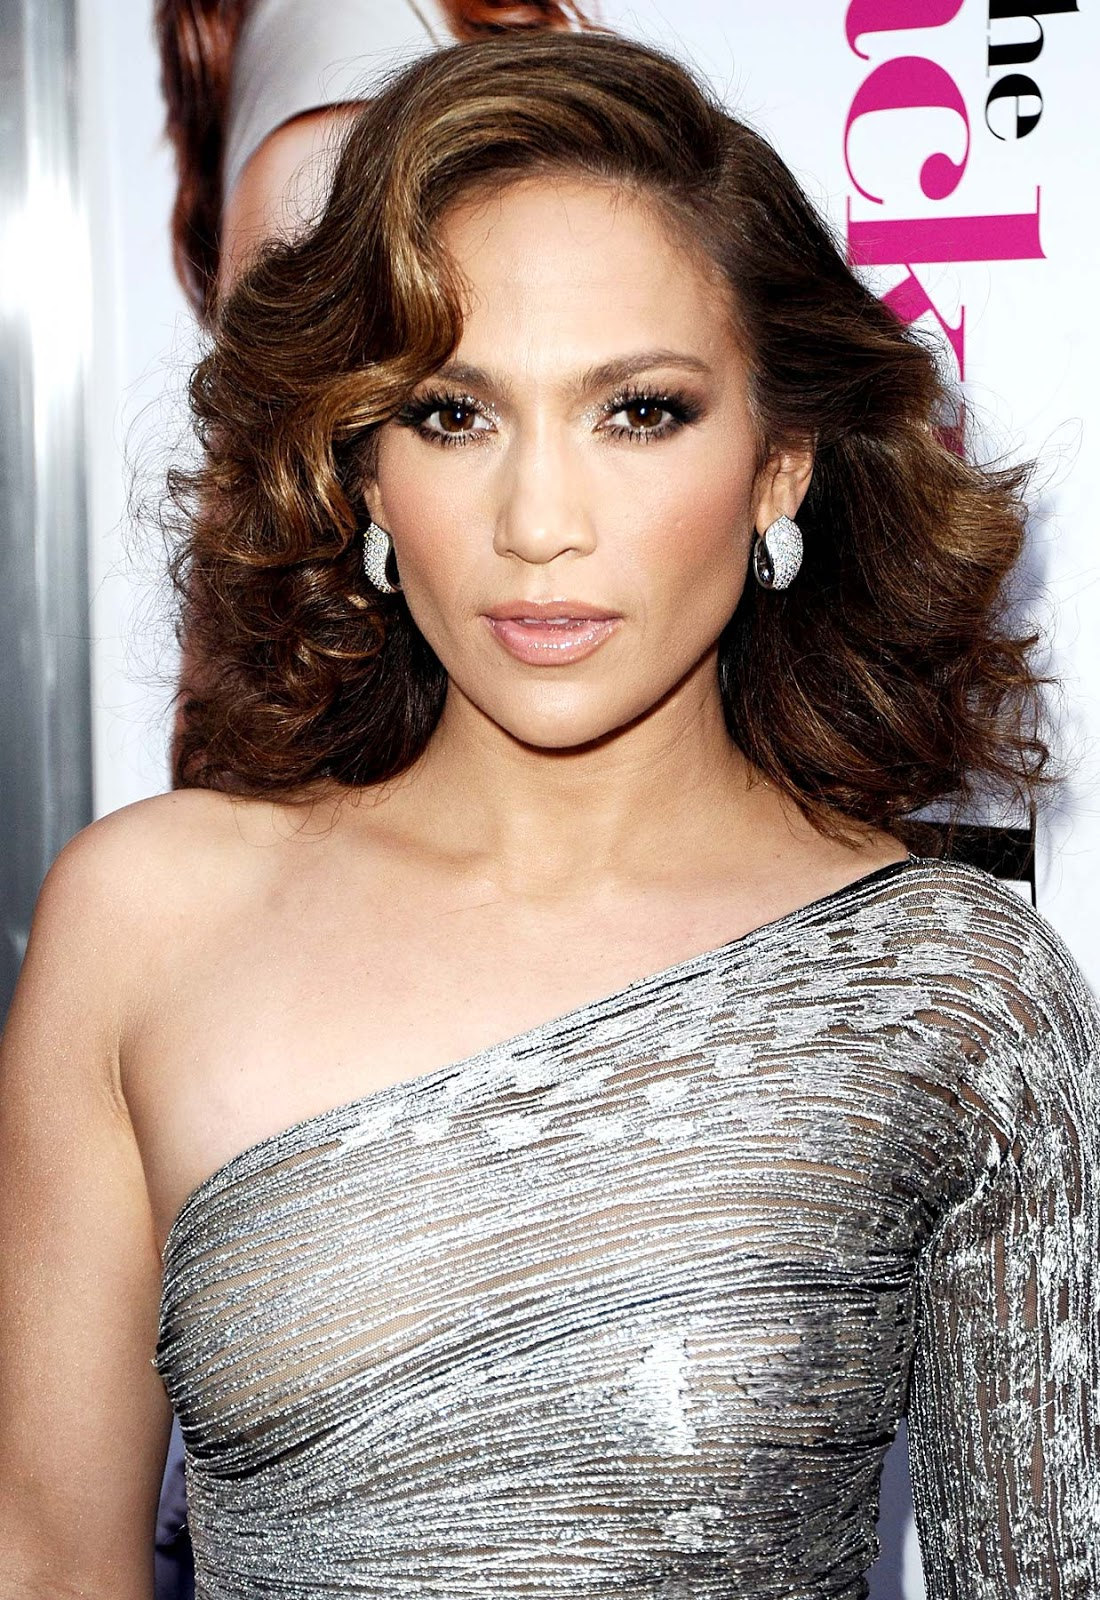 Swell So Fab Hairstyles Old Hollywood Sculpted Waves Hairstyles For Women Draintrainus